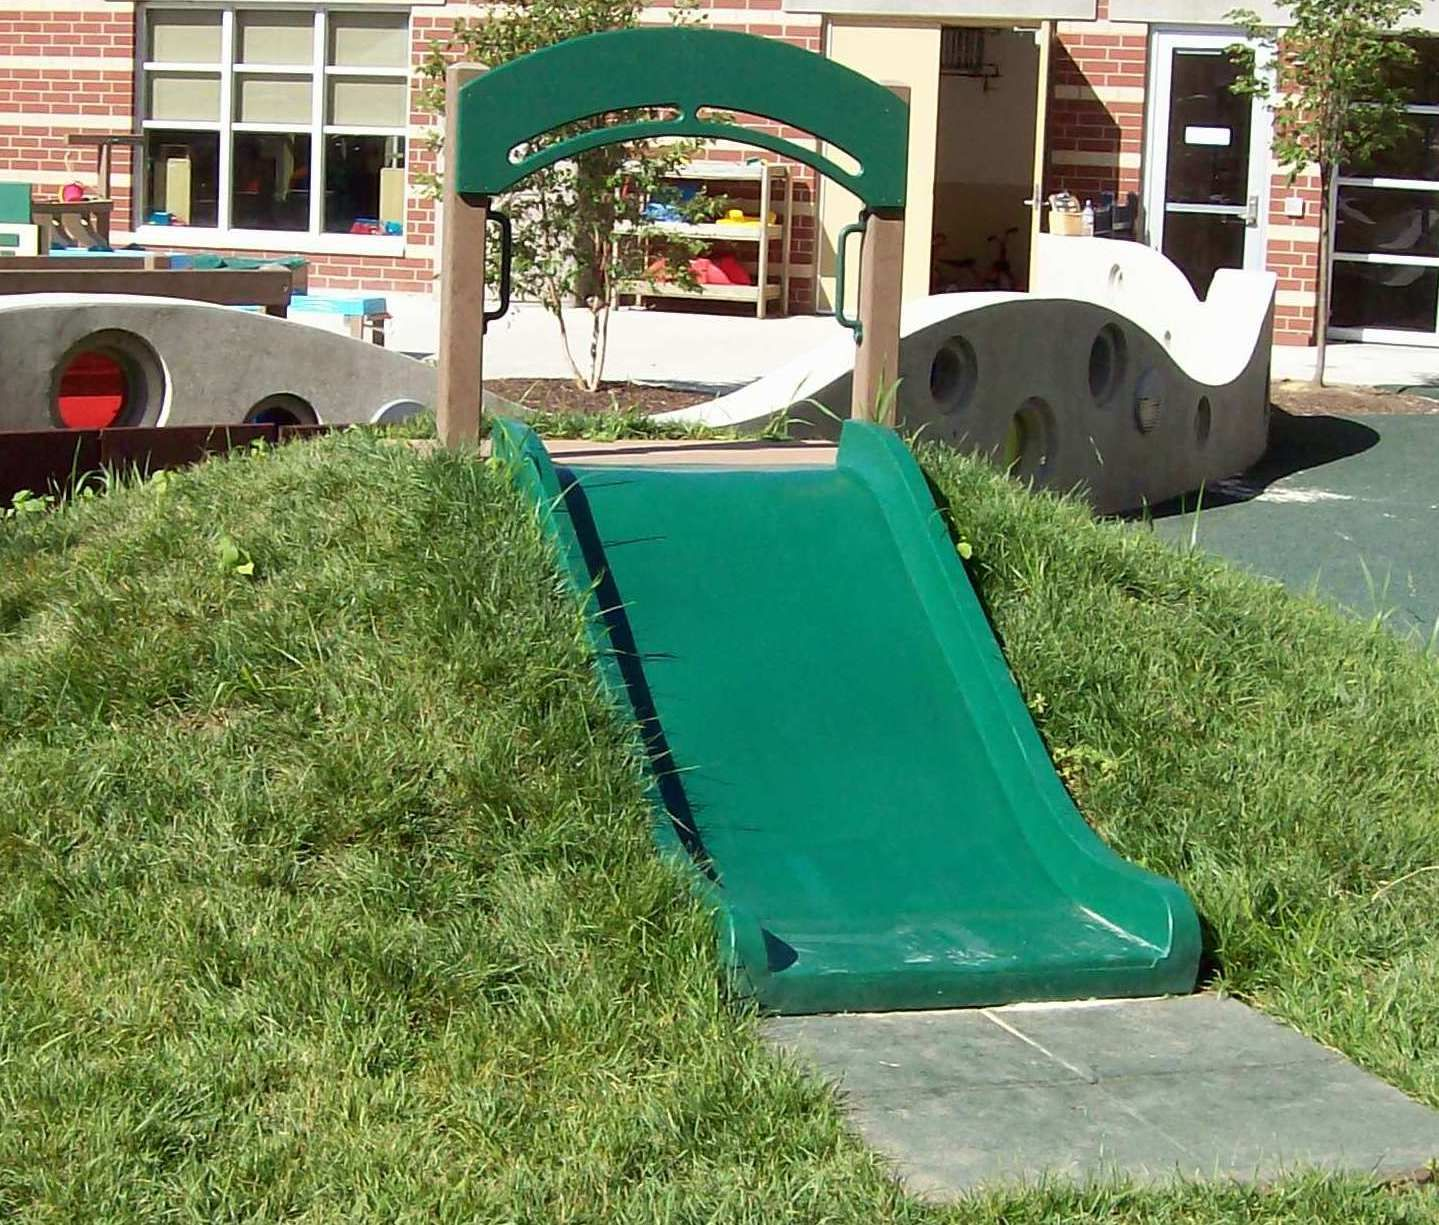 Hill Slide for your natural playground. Wide slides are